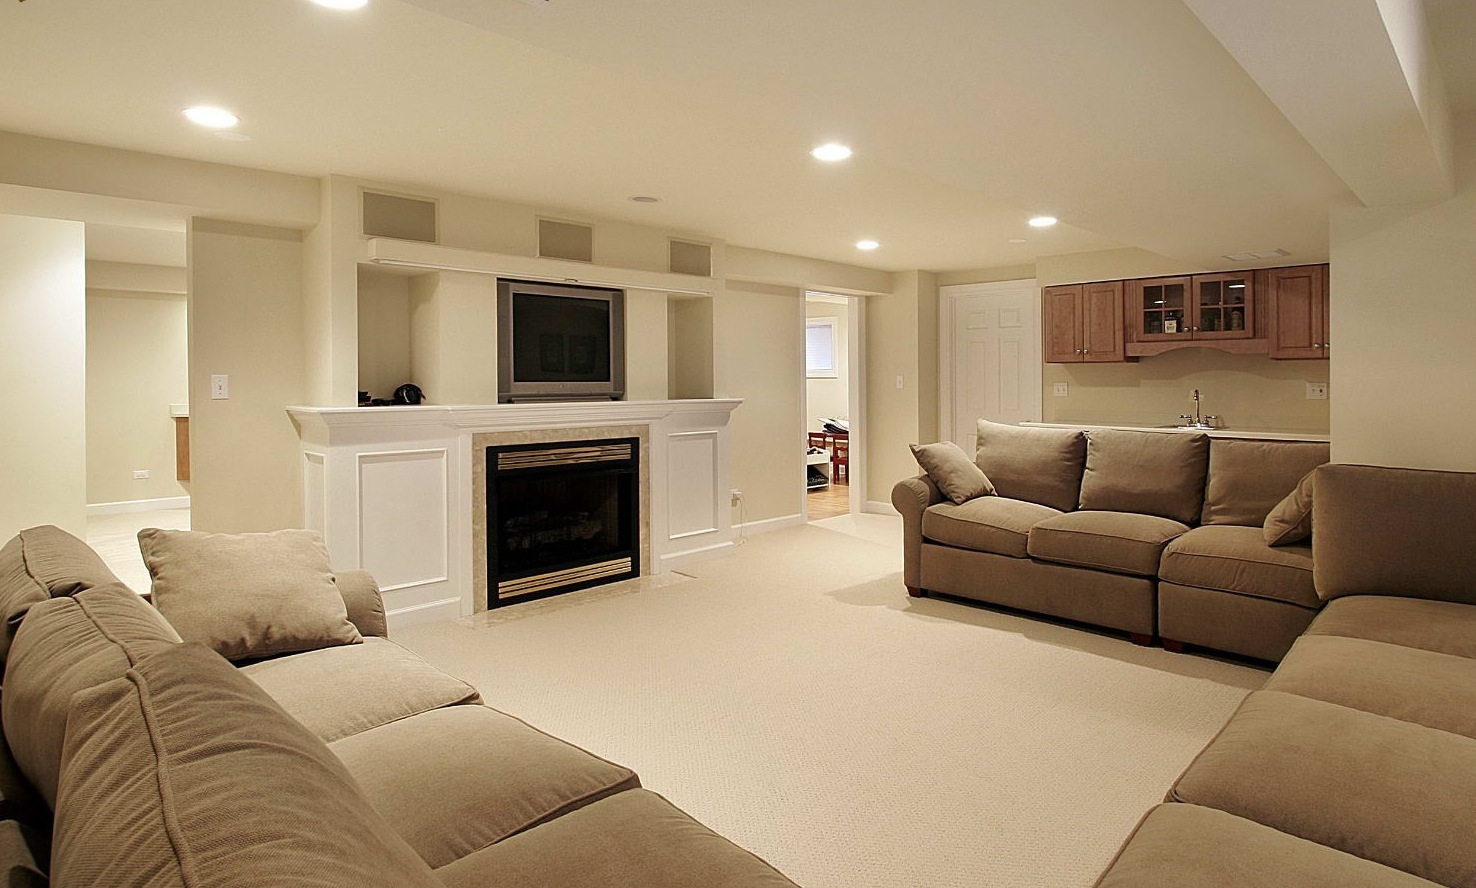 Living Room Renovation Ideas Alluring 30 Basement Remodeling Ideas & Inspiration Design Inspiration